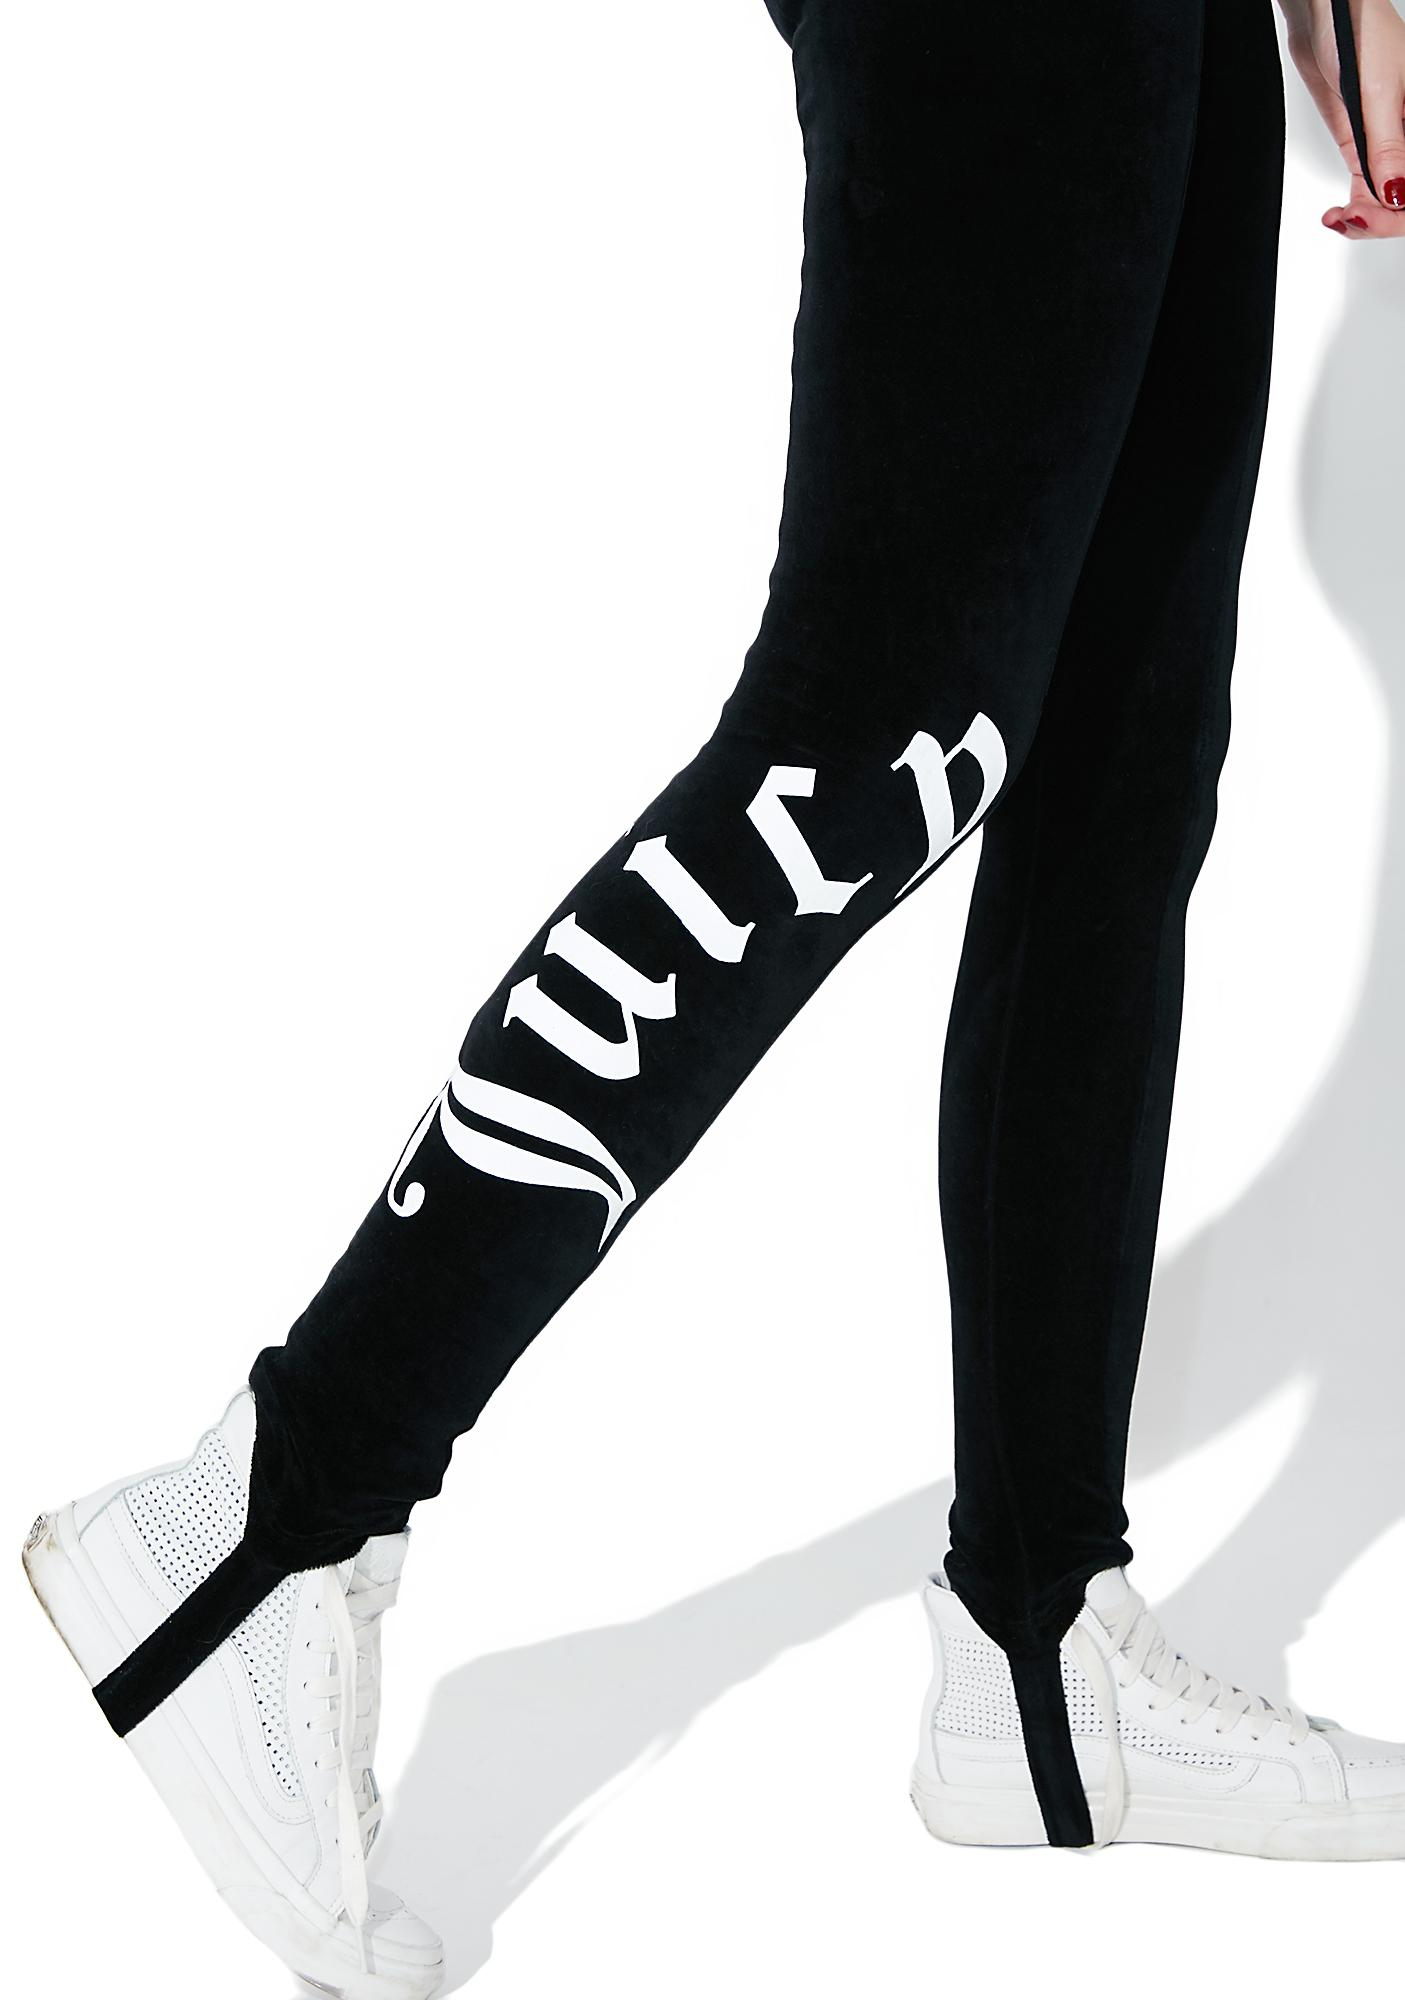 New JUICY COUTURE Velour Stirrup Leggings | Dolls Kill TW36